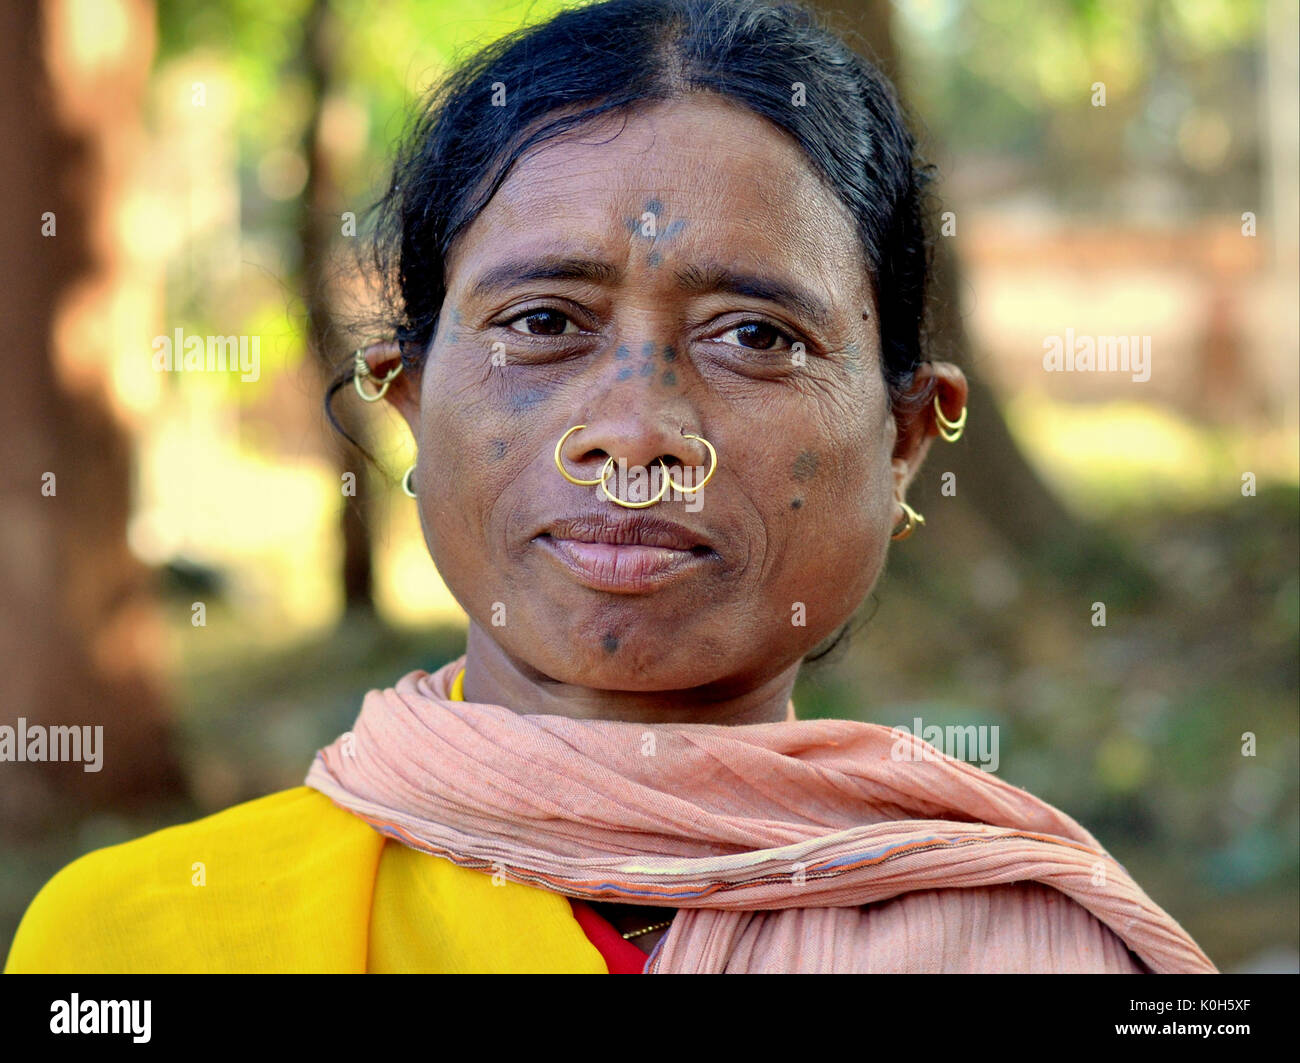 Middle-aged Indian Adivasi market woman with facial tattoos, three golden nose rings and distinctive tribal earrings. - Stock Image